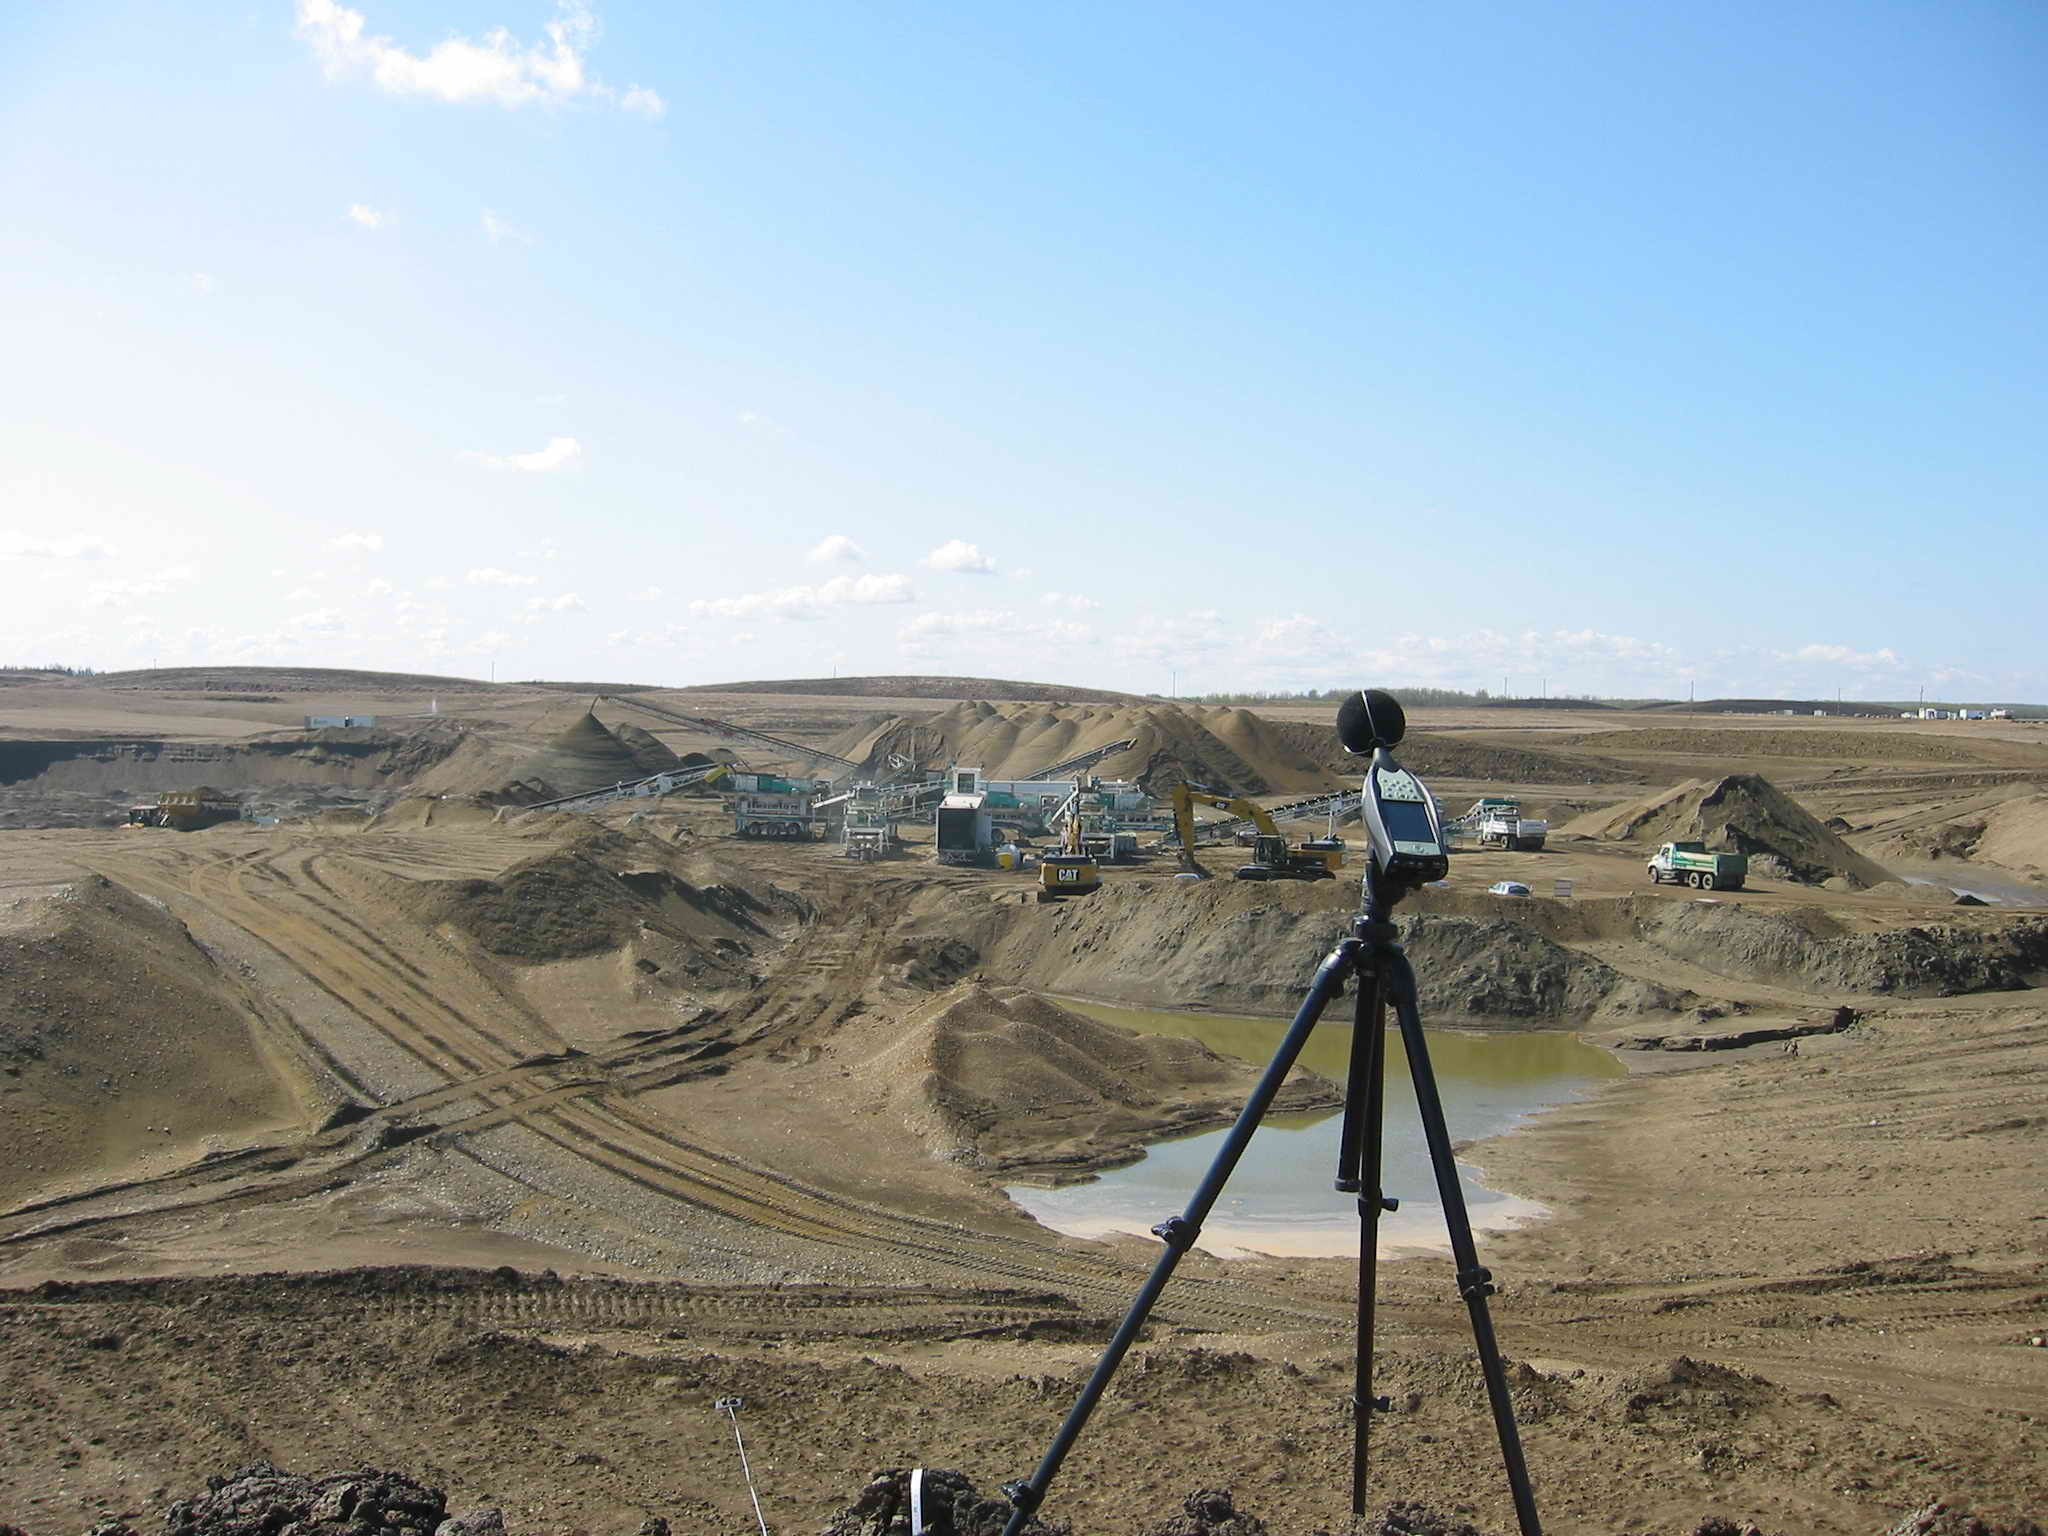 Noise Measurements at Gravel Pit With Crushing